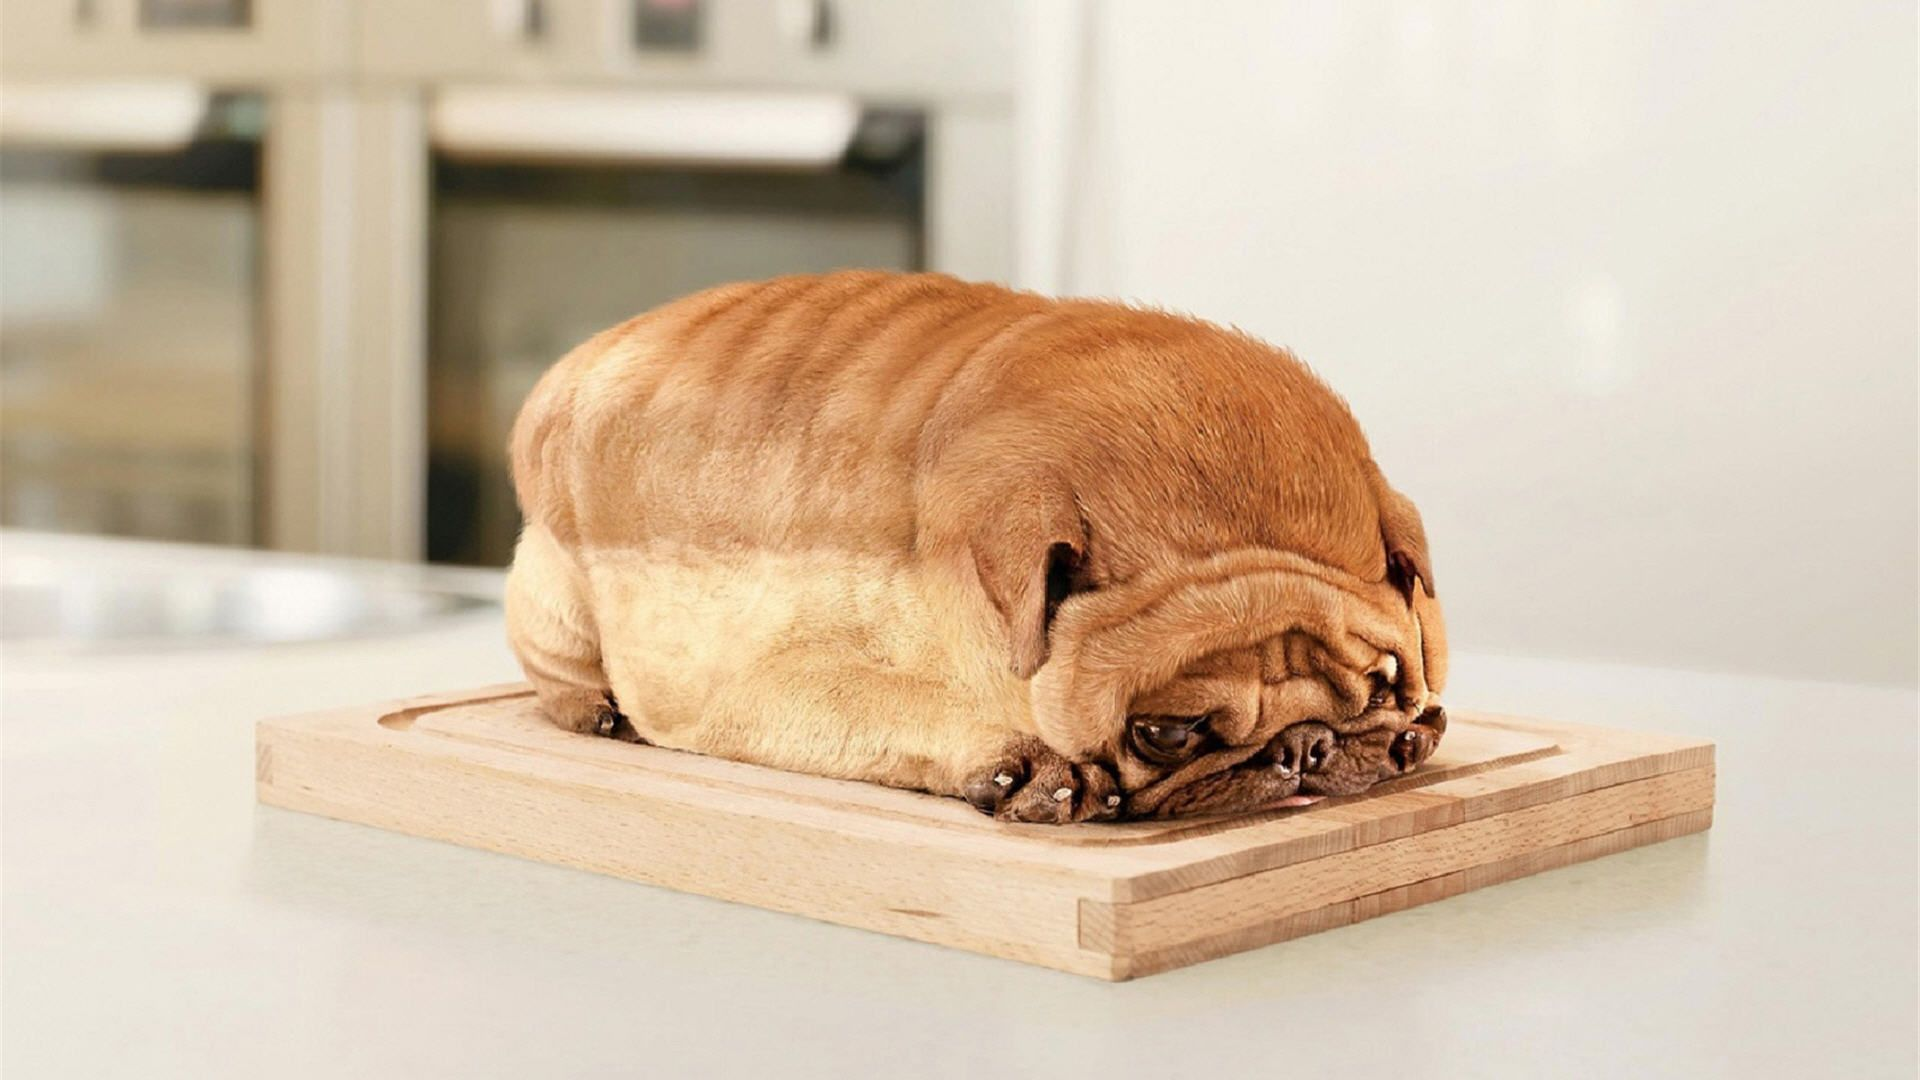 This-pug-who-is-bread-wallpaper-wp38011115